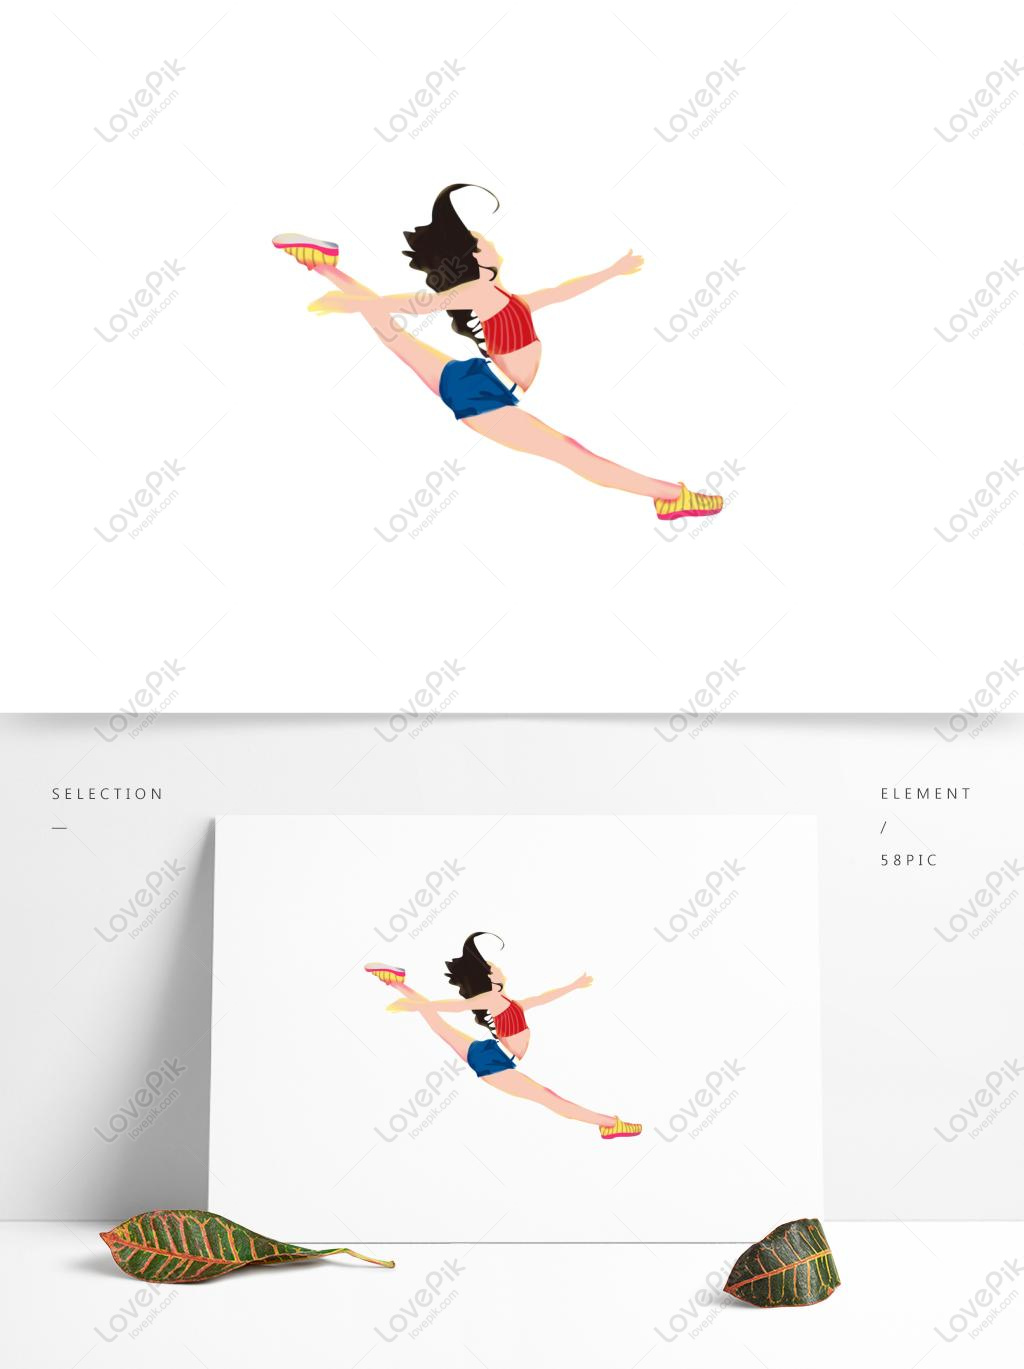 Clipart of Gymnastic Girl Silhouette free image